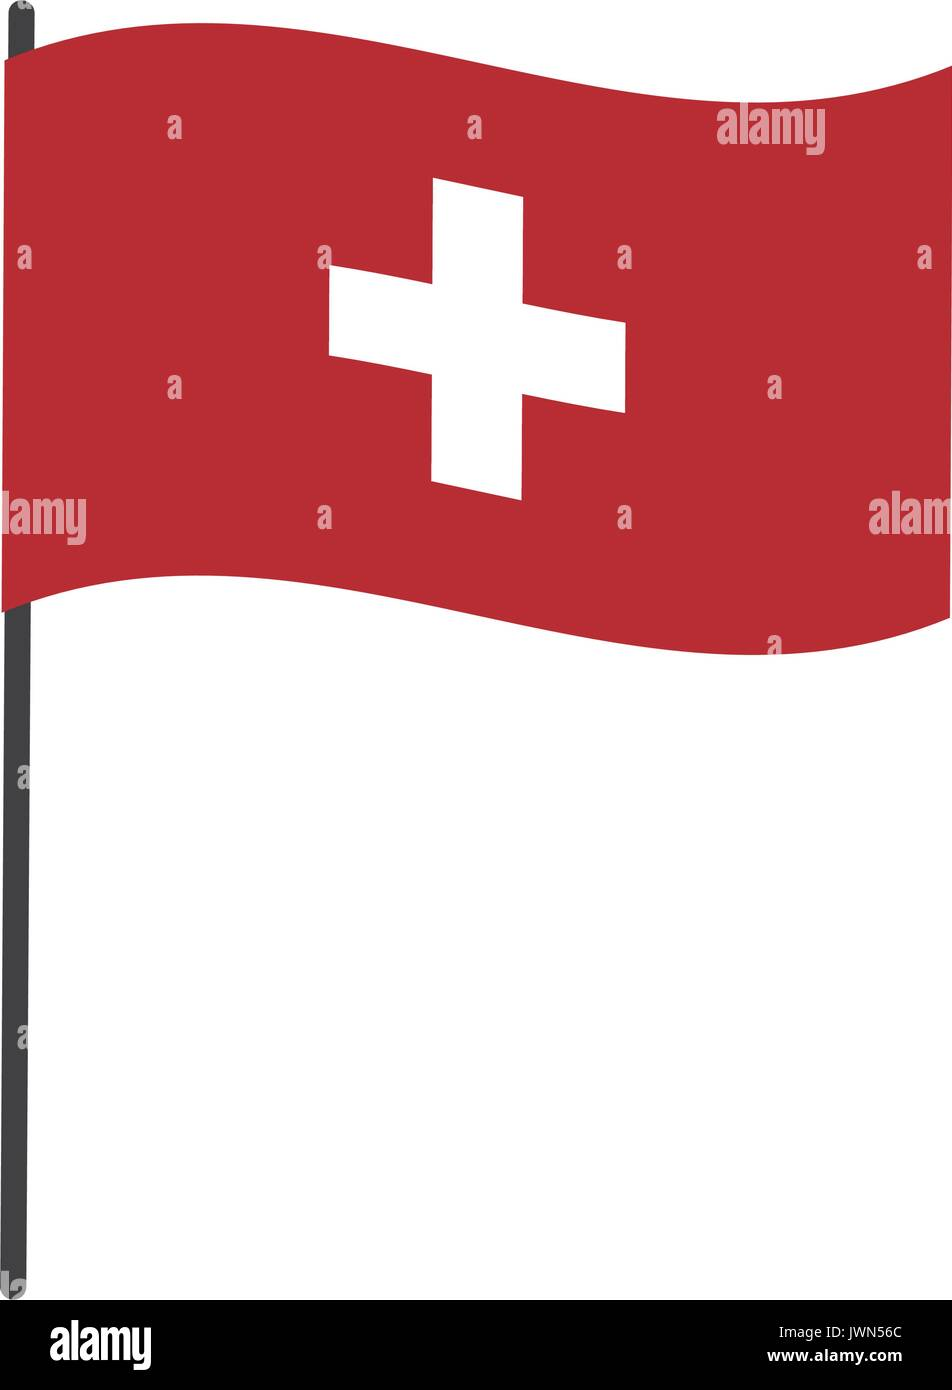 flag of switzerland accurate dimensions element proportions - Stock Image